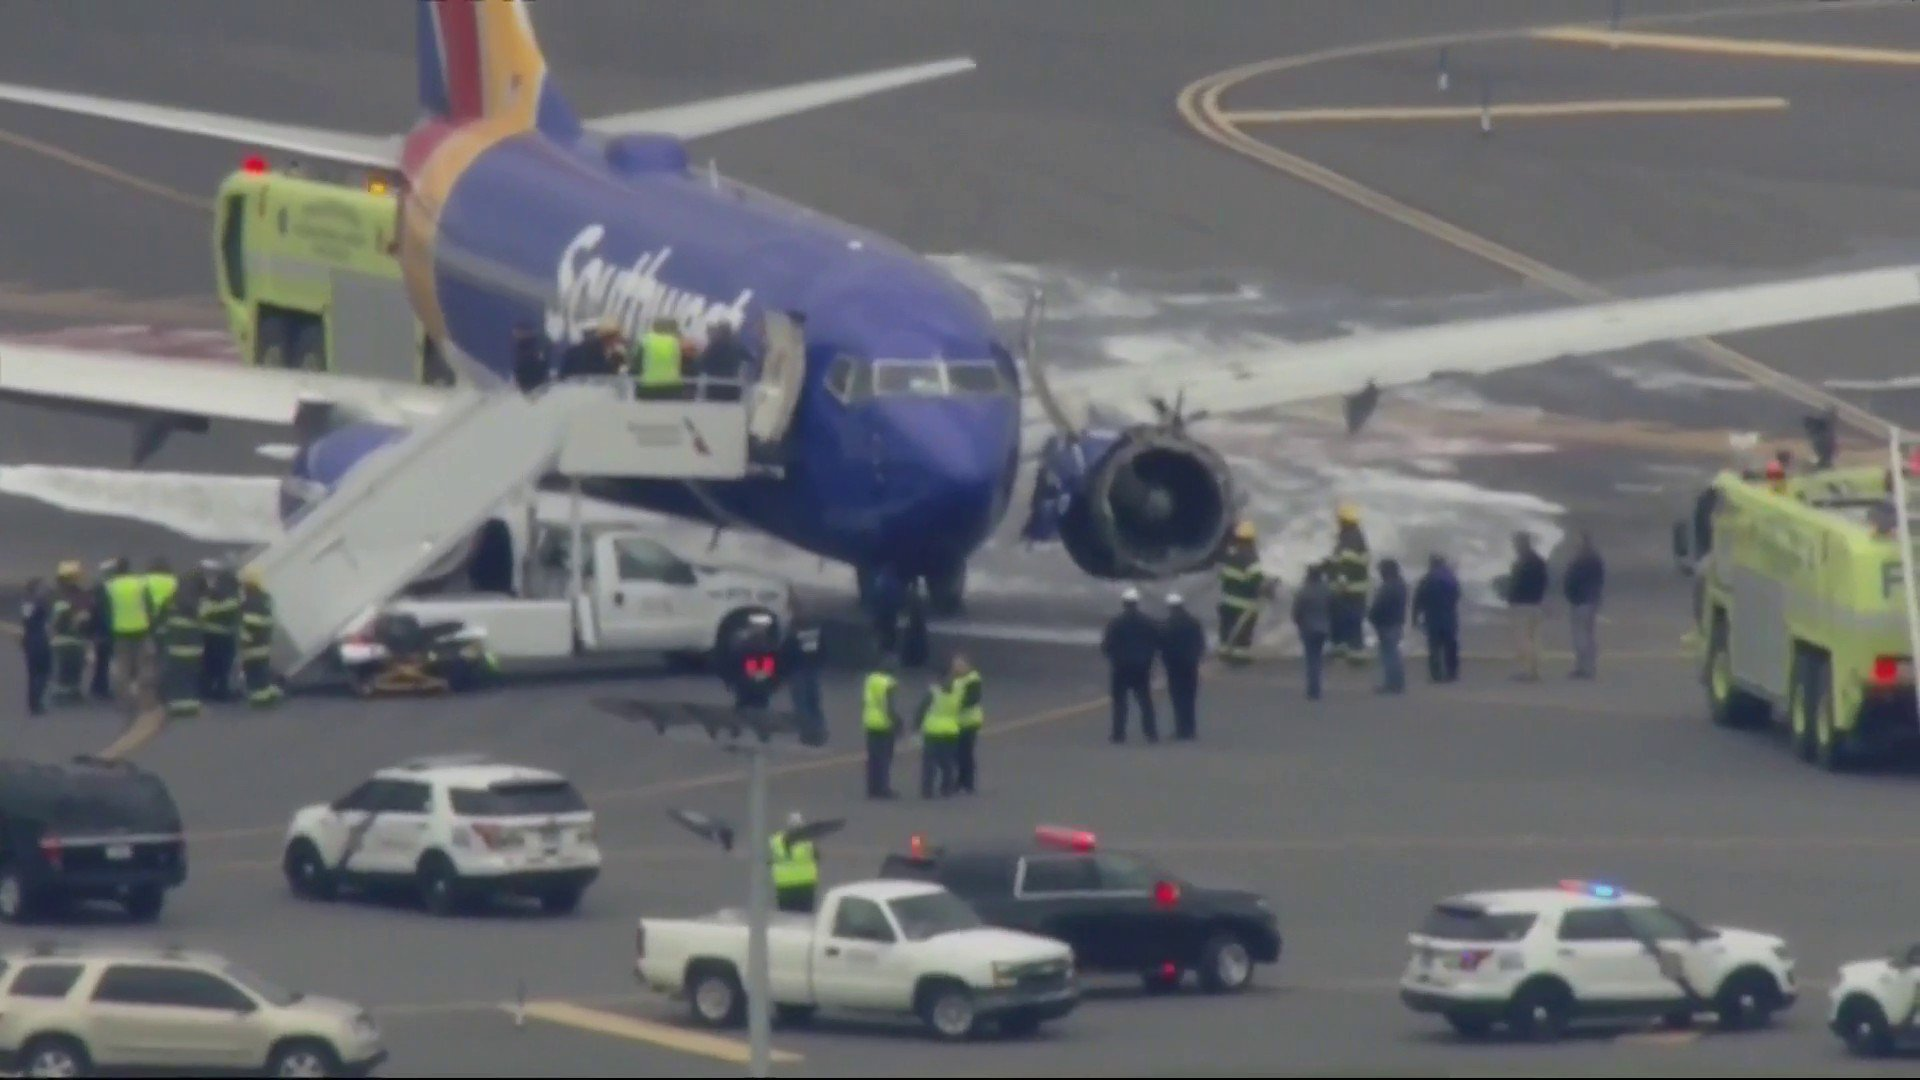 LATEST: Southwest Airlines flight makes emergency landing at Philadelphia airport. https://t.co/wshrfGFC6p https://t.co/nmtBgEGPZ1